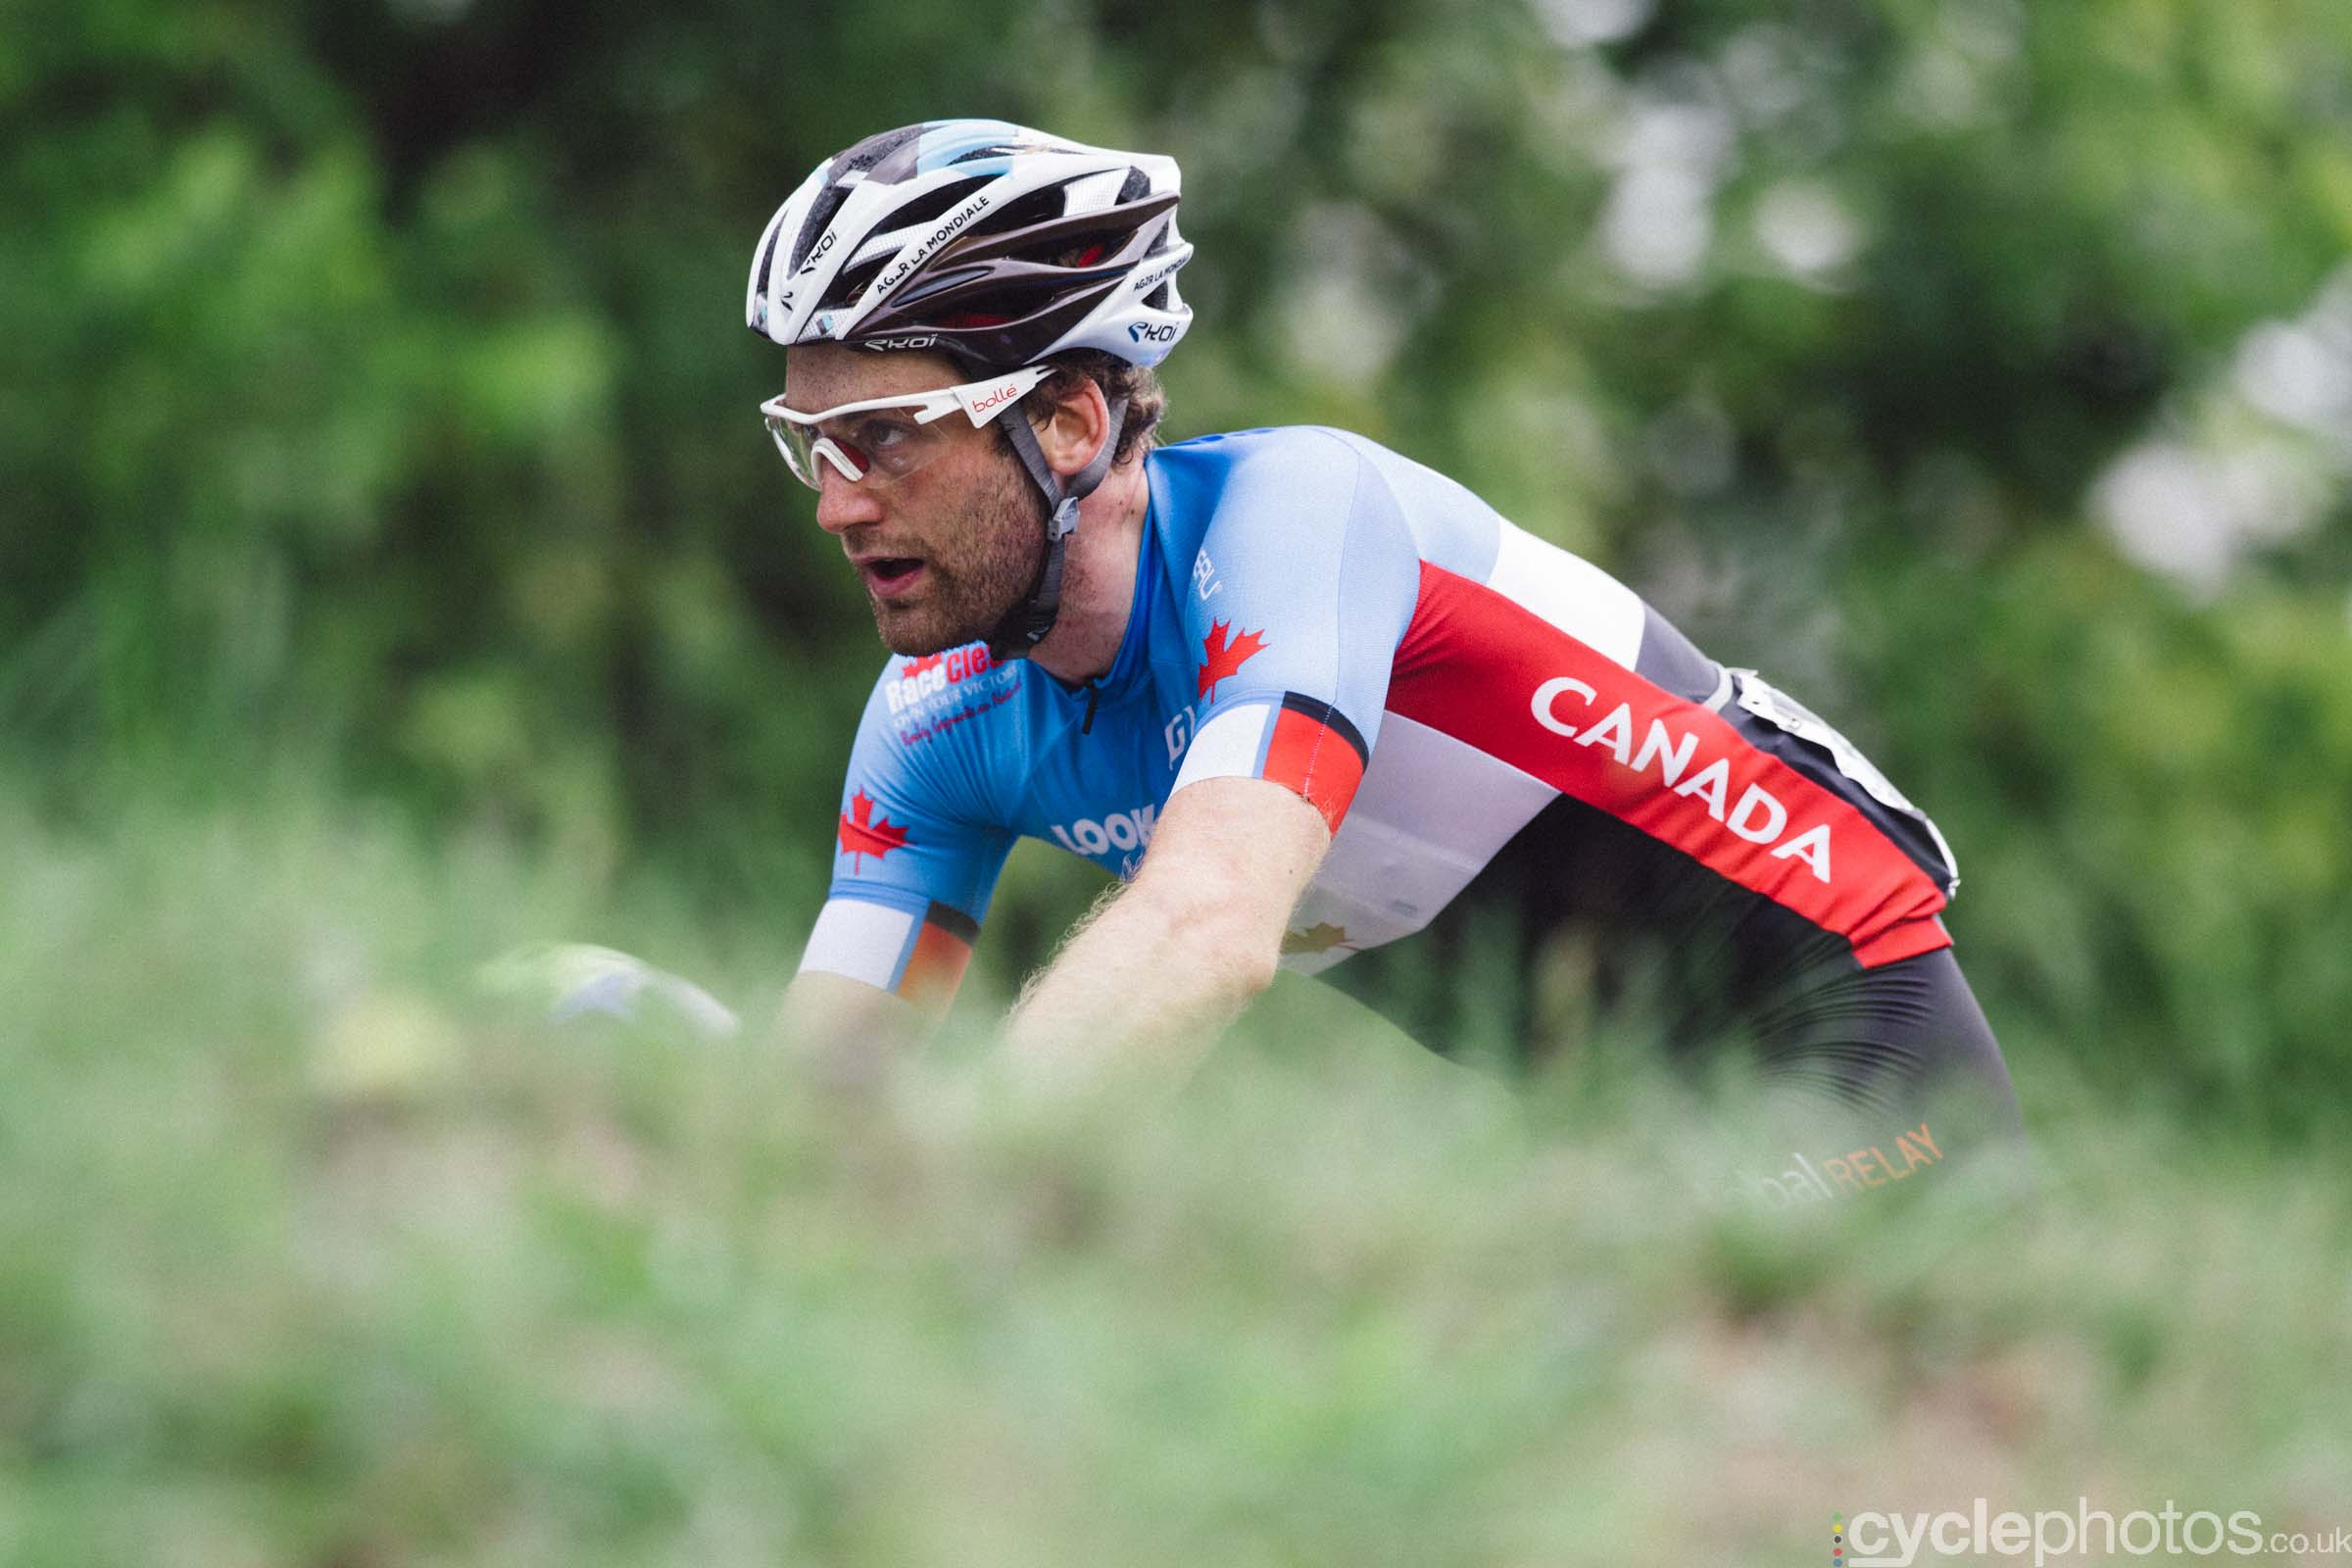 cyclephotos-world-champs-richmond-112822